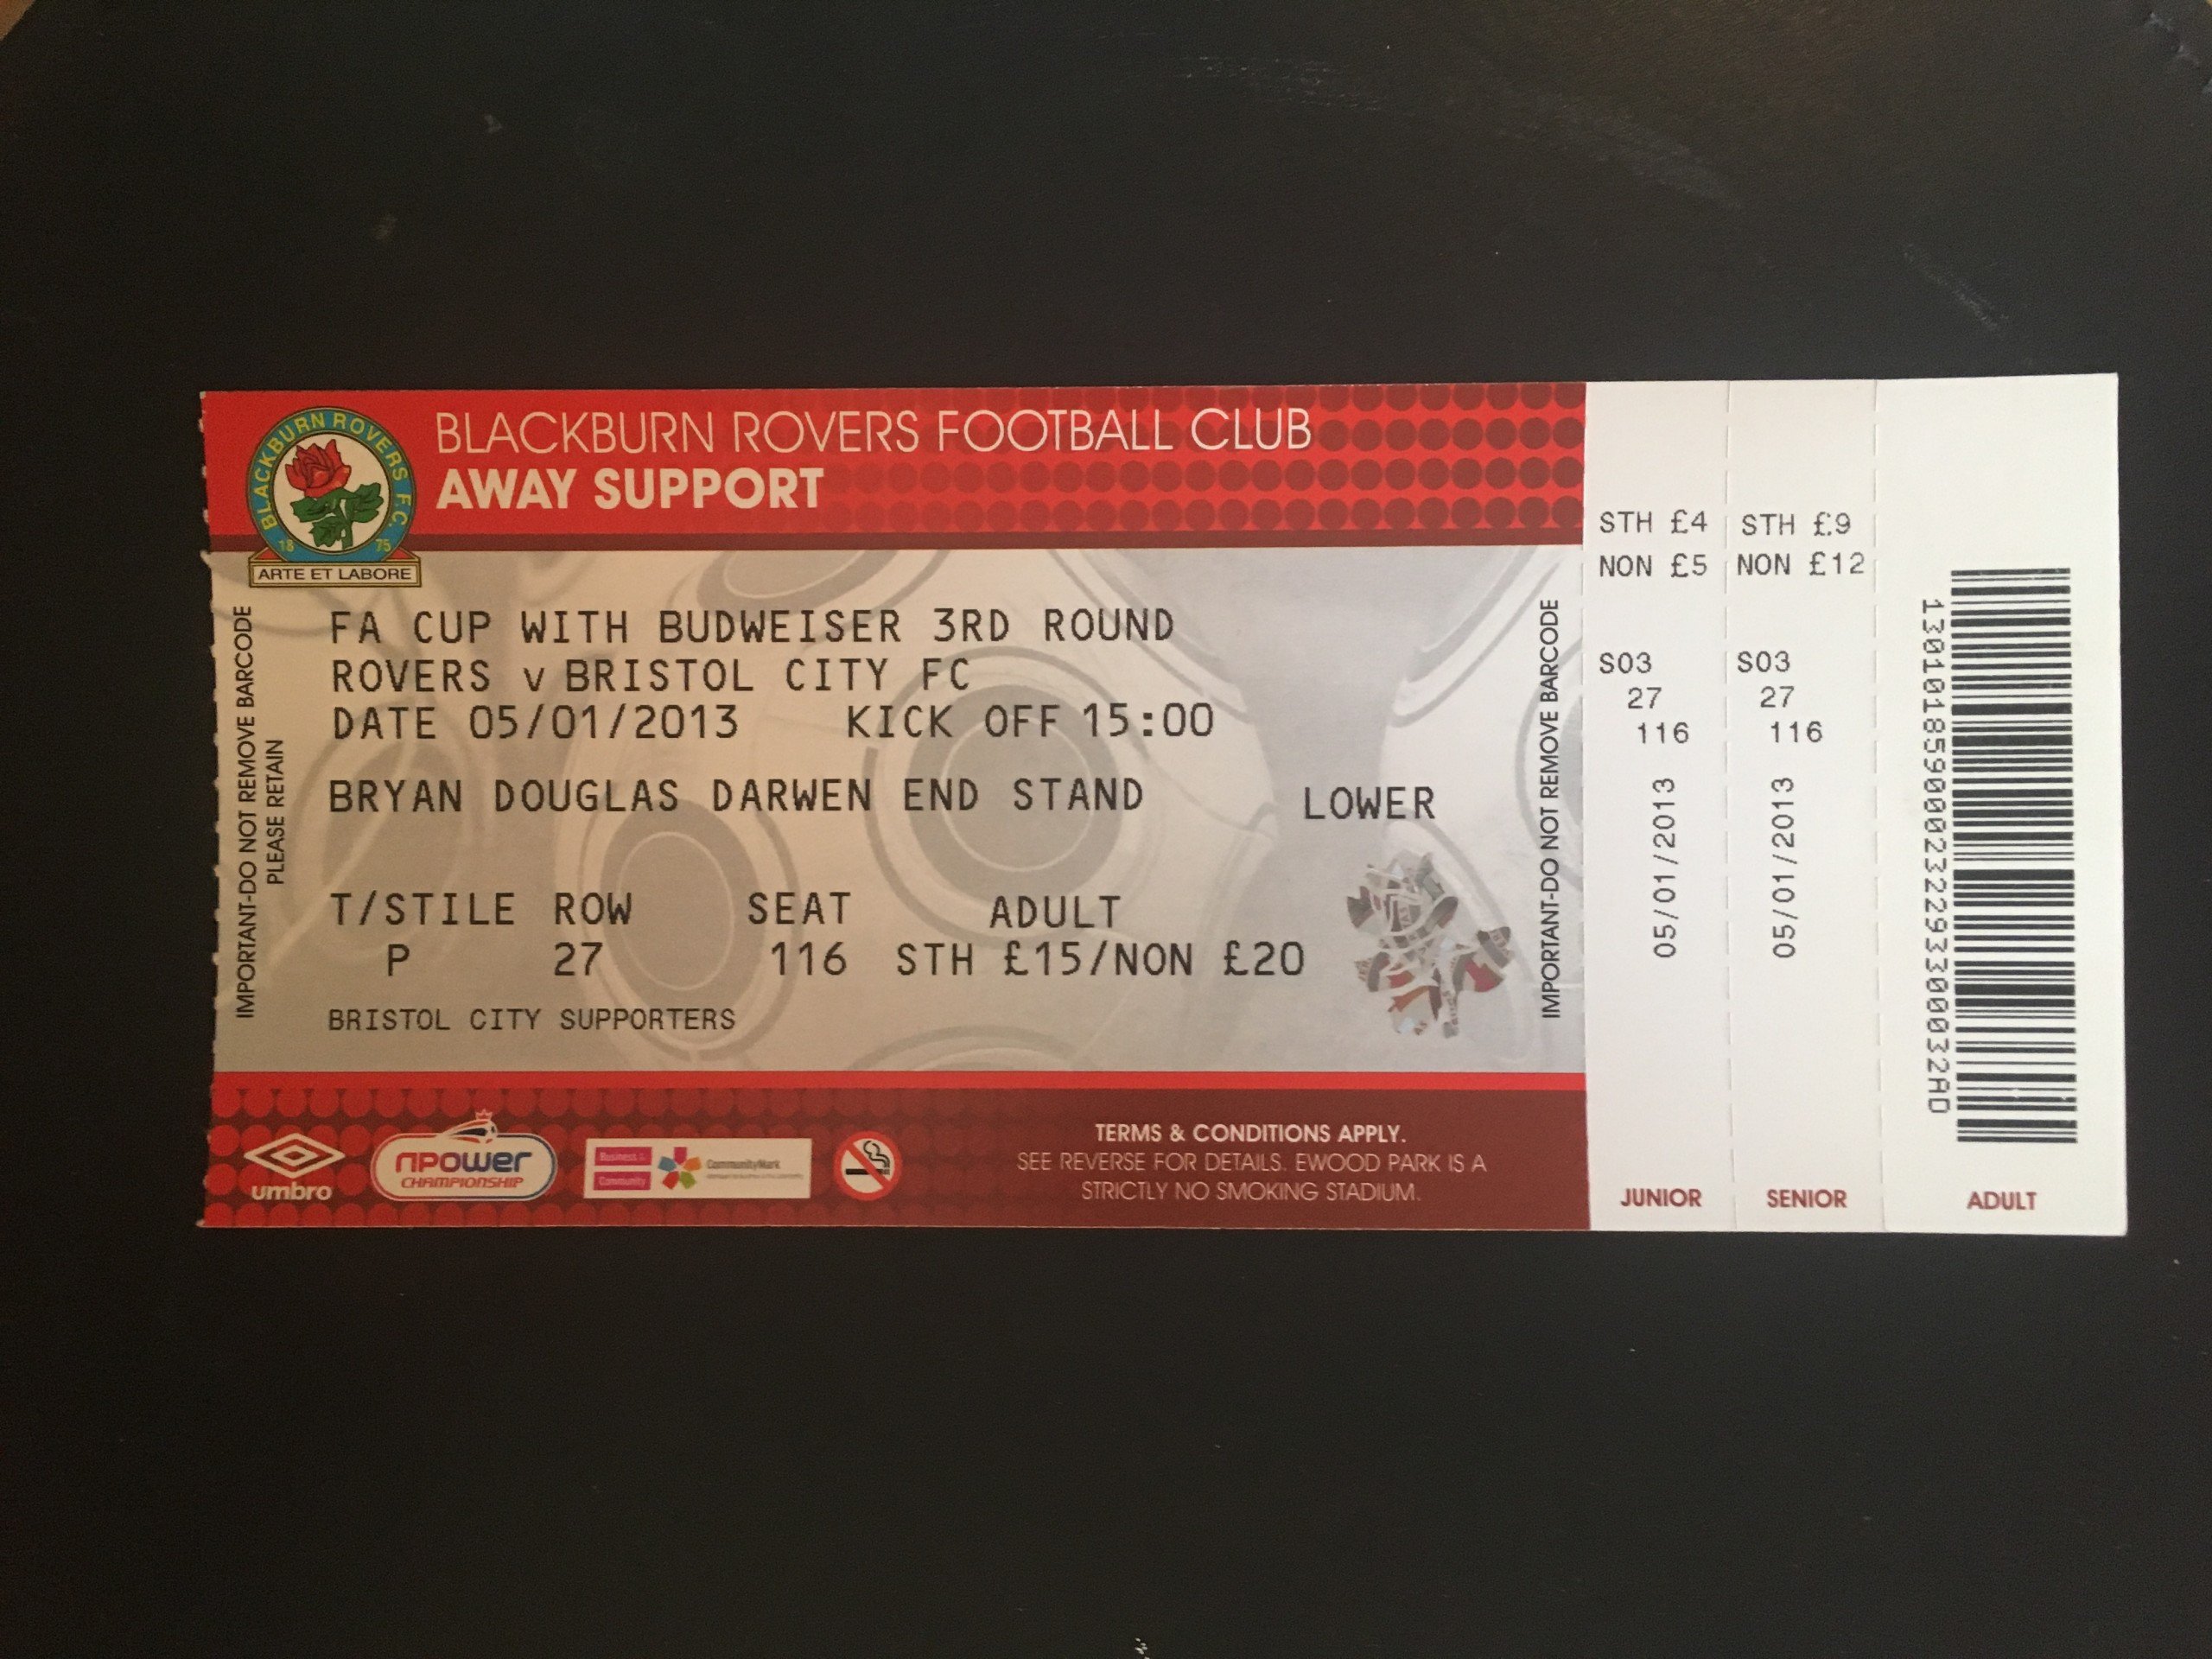 Blackburn Rovers v Bristol City 02-02-13 Ticket